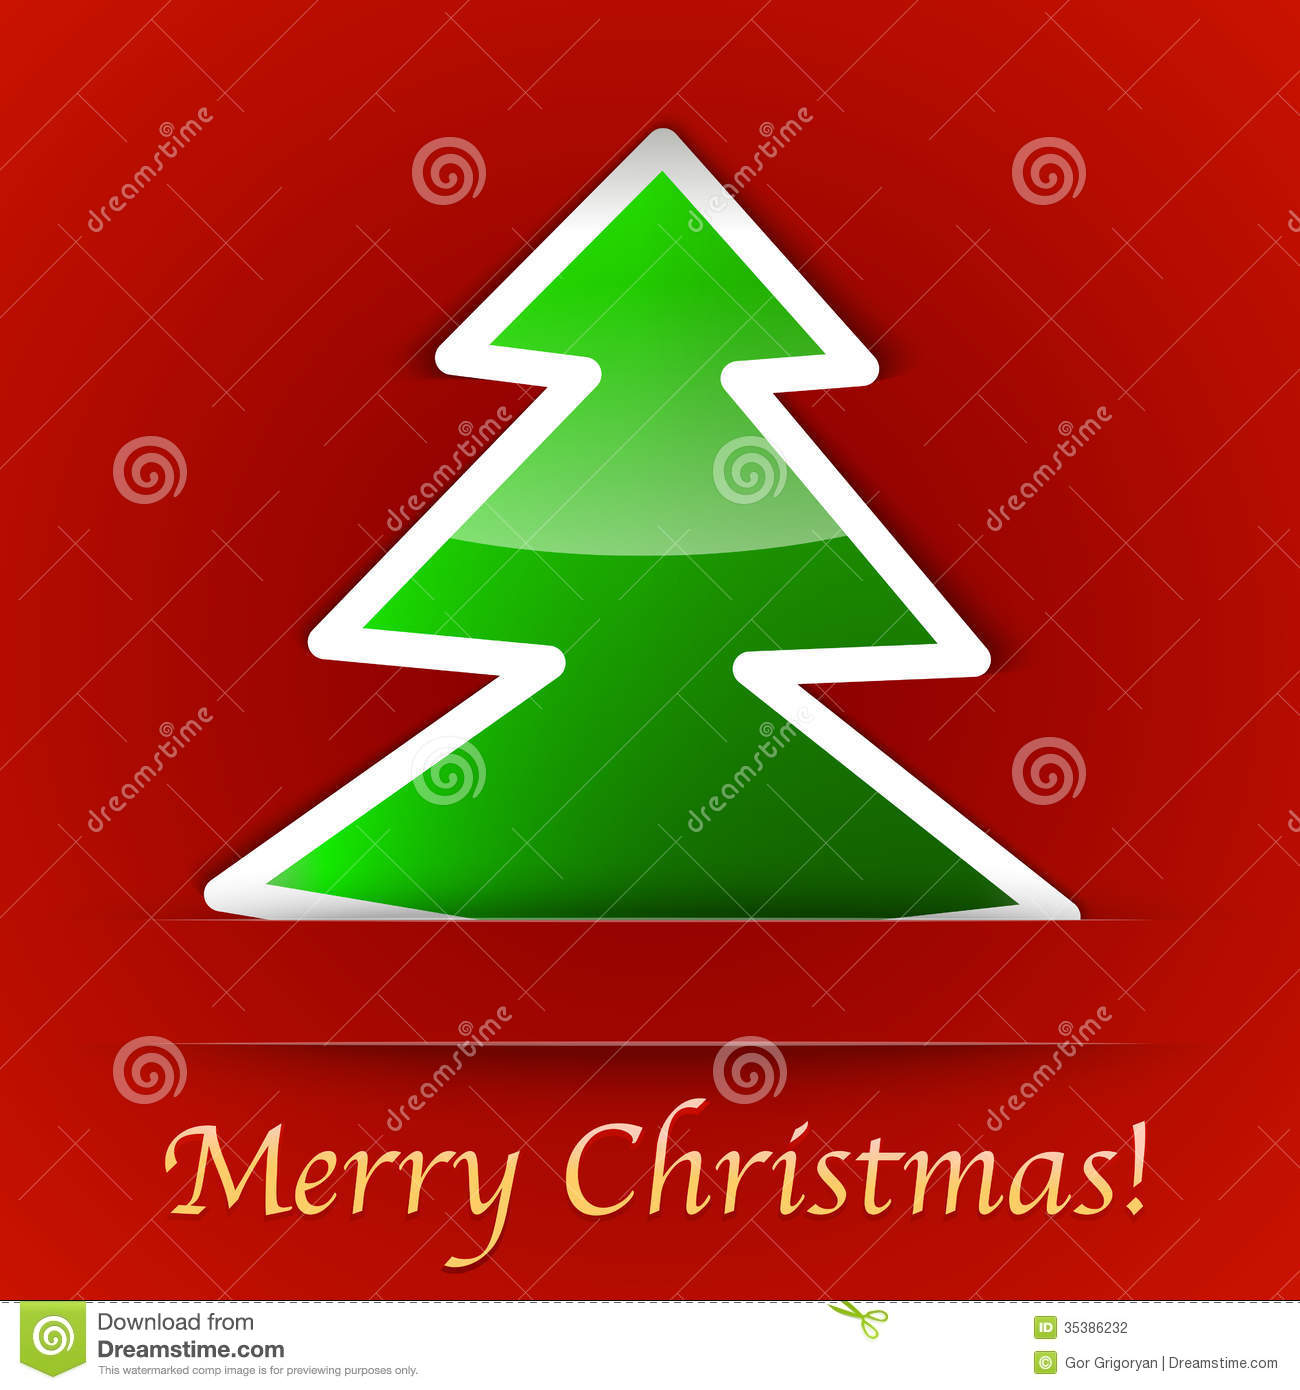 Merry Christmas Gift Card With A Simple Christmas Tree Placed On ...